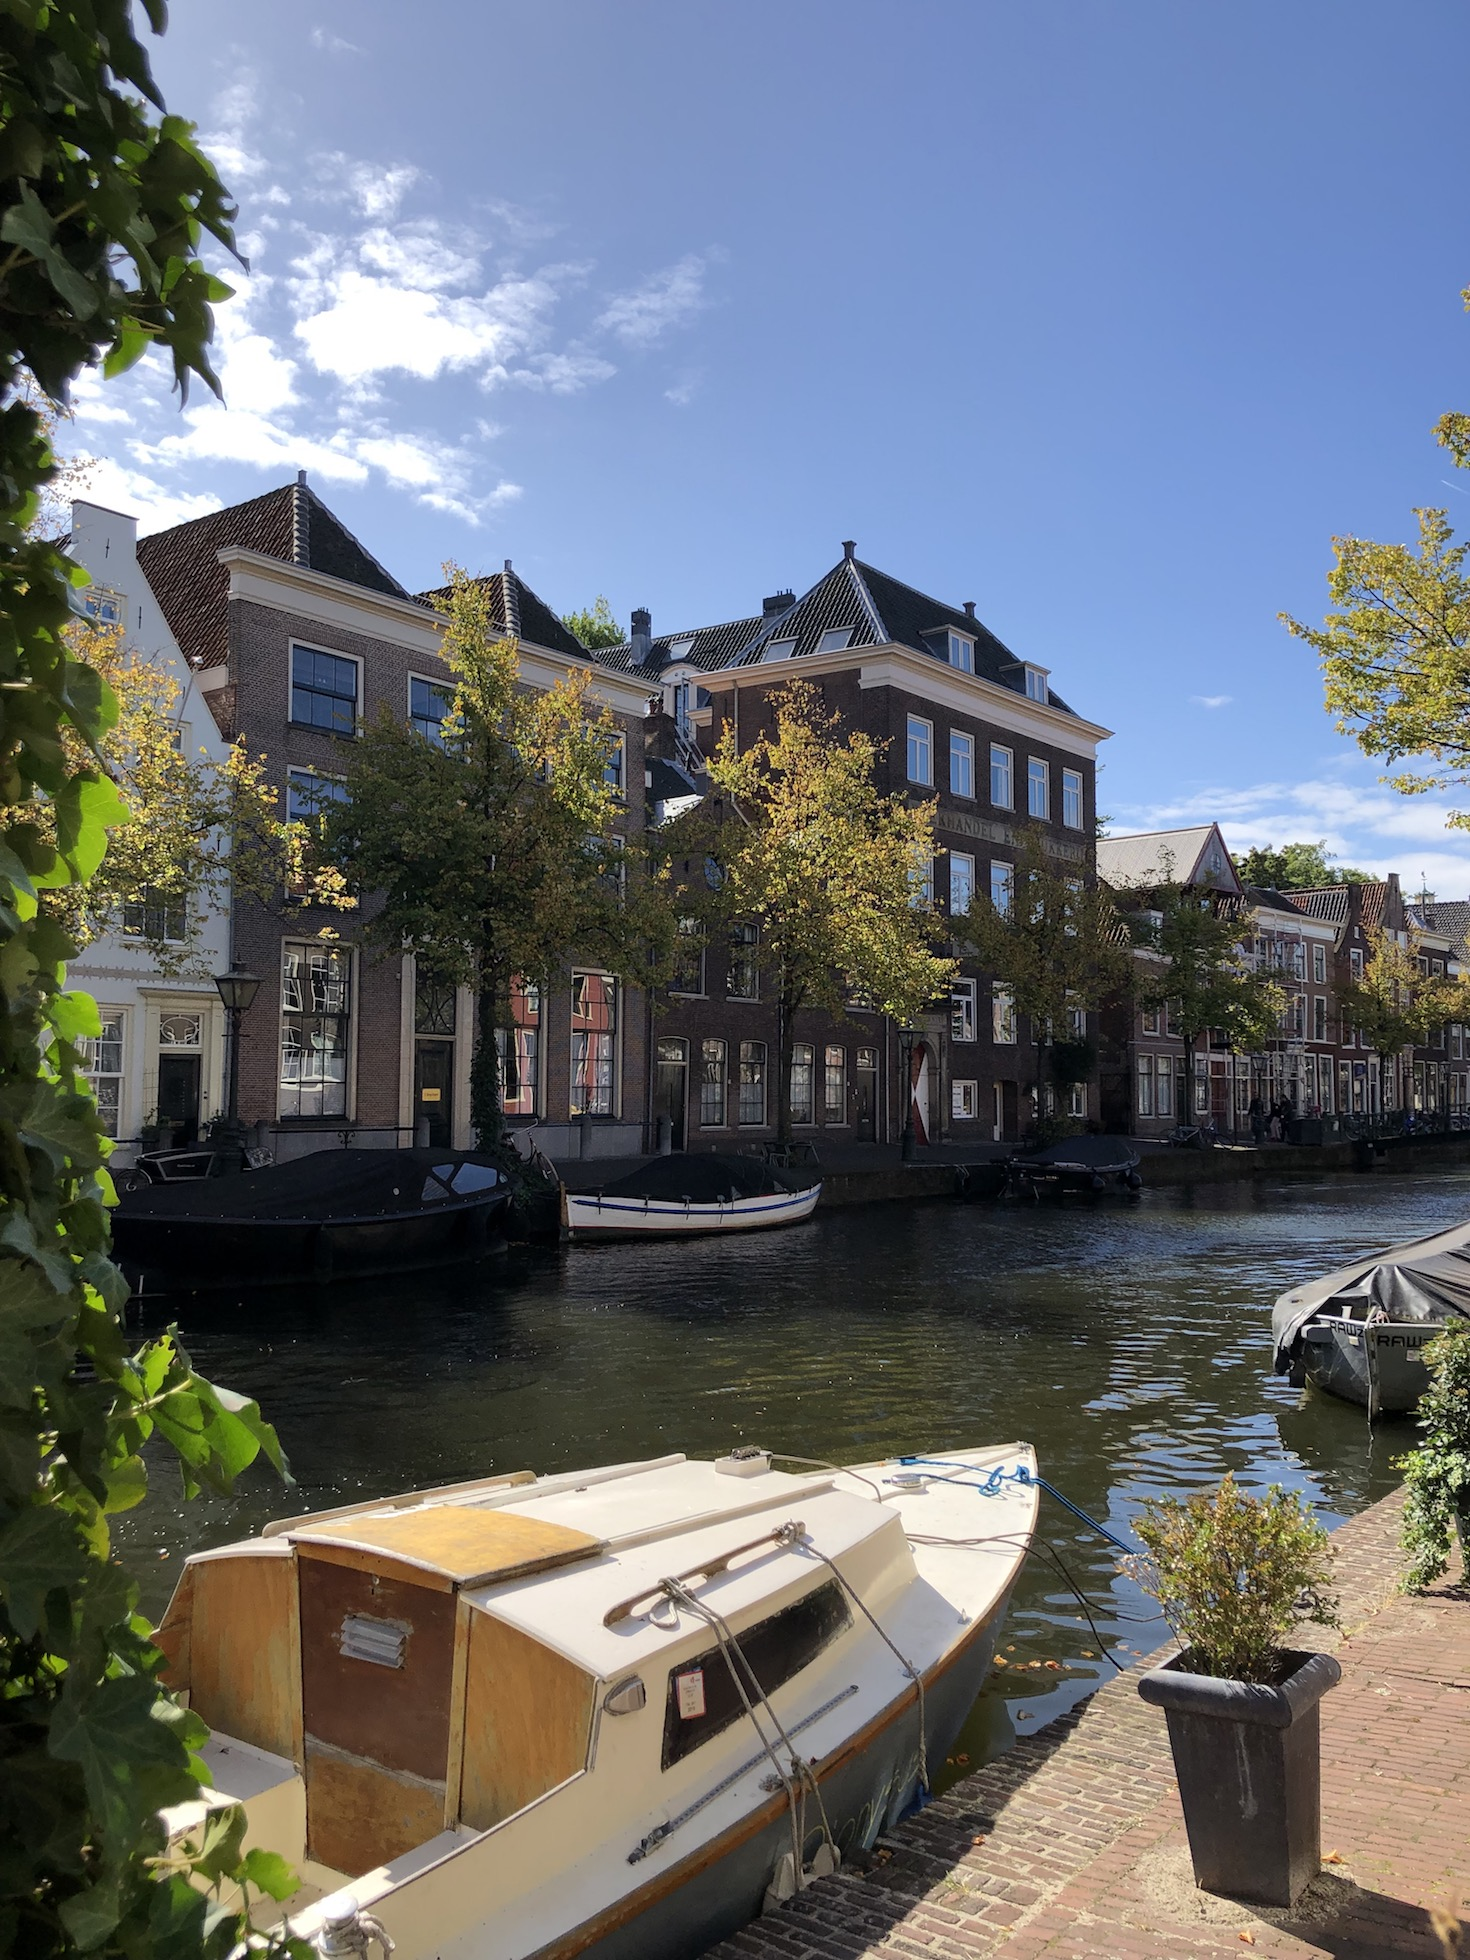 Gracht am Fluss in Leiden